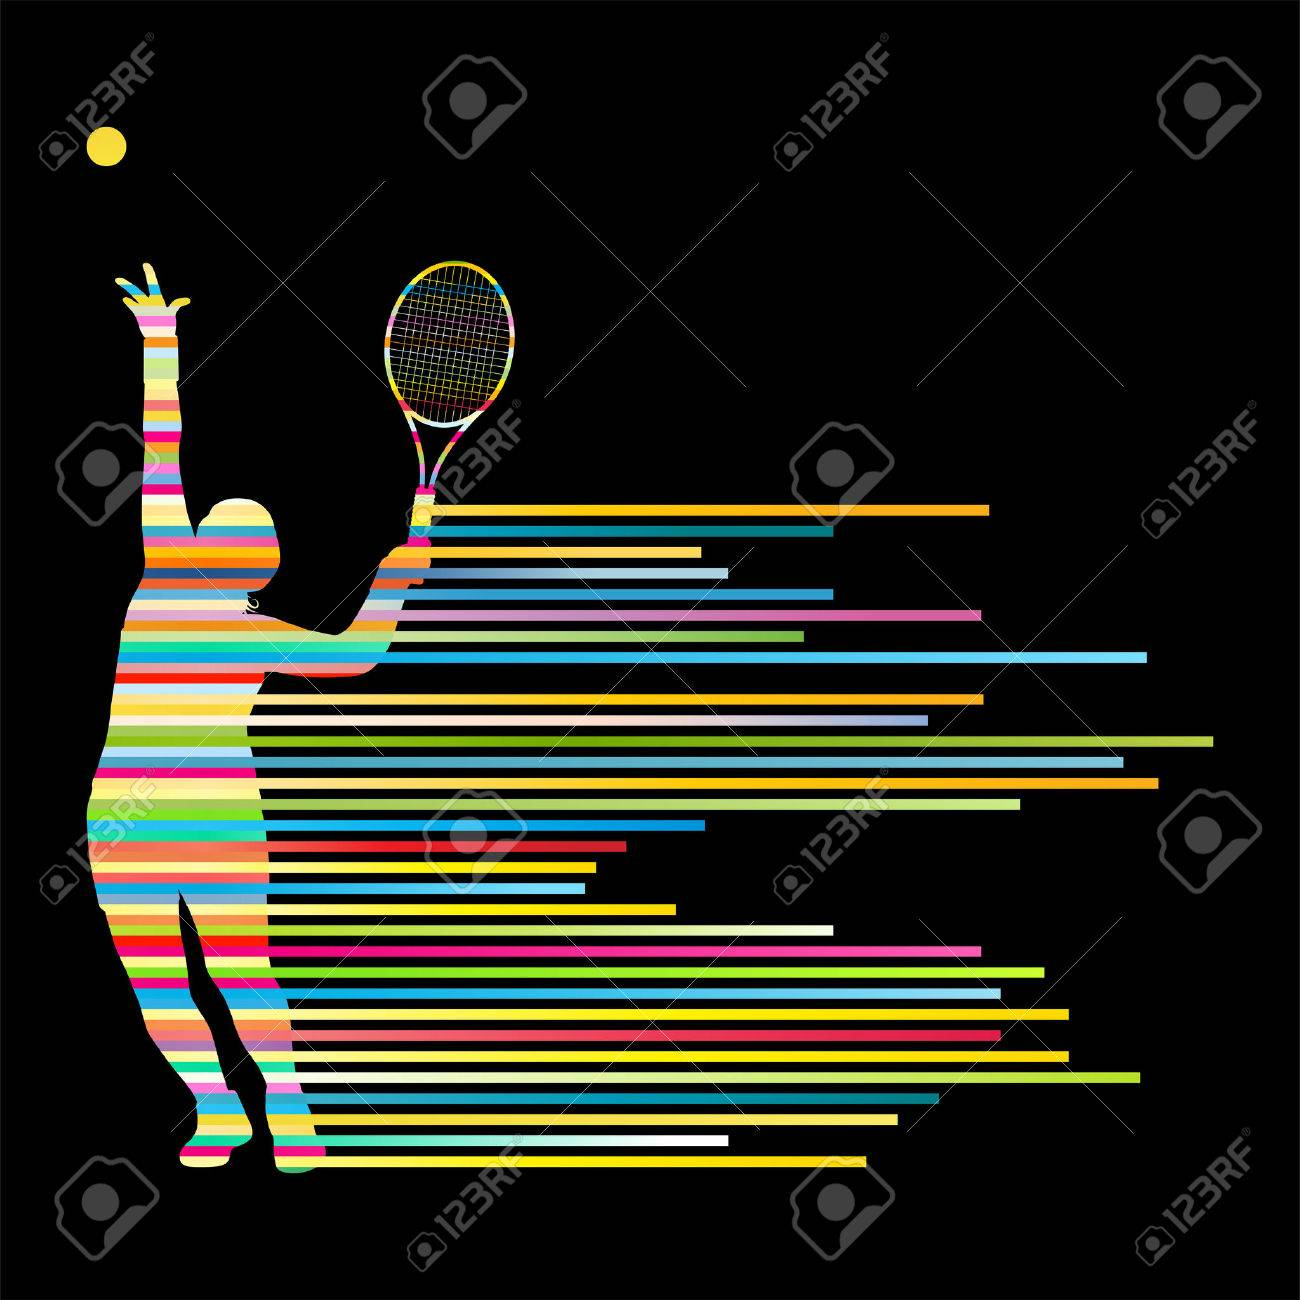 Tennis player abstract vector background concept made of stripes for poster - 28371709